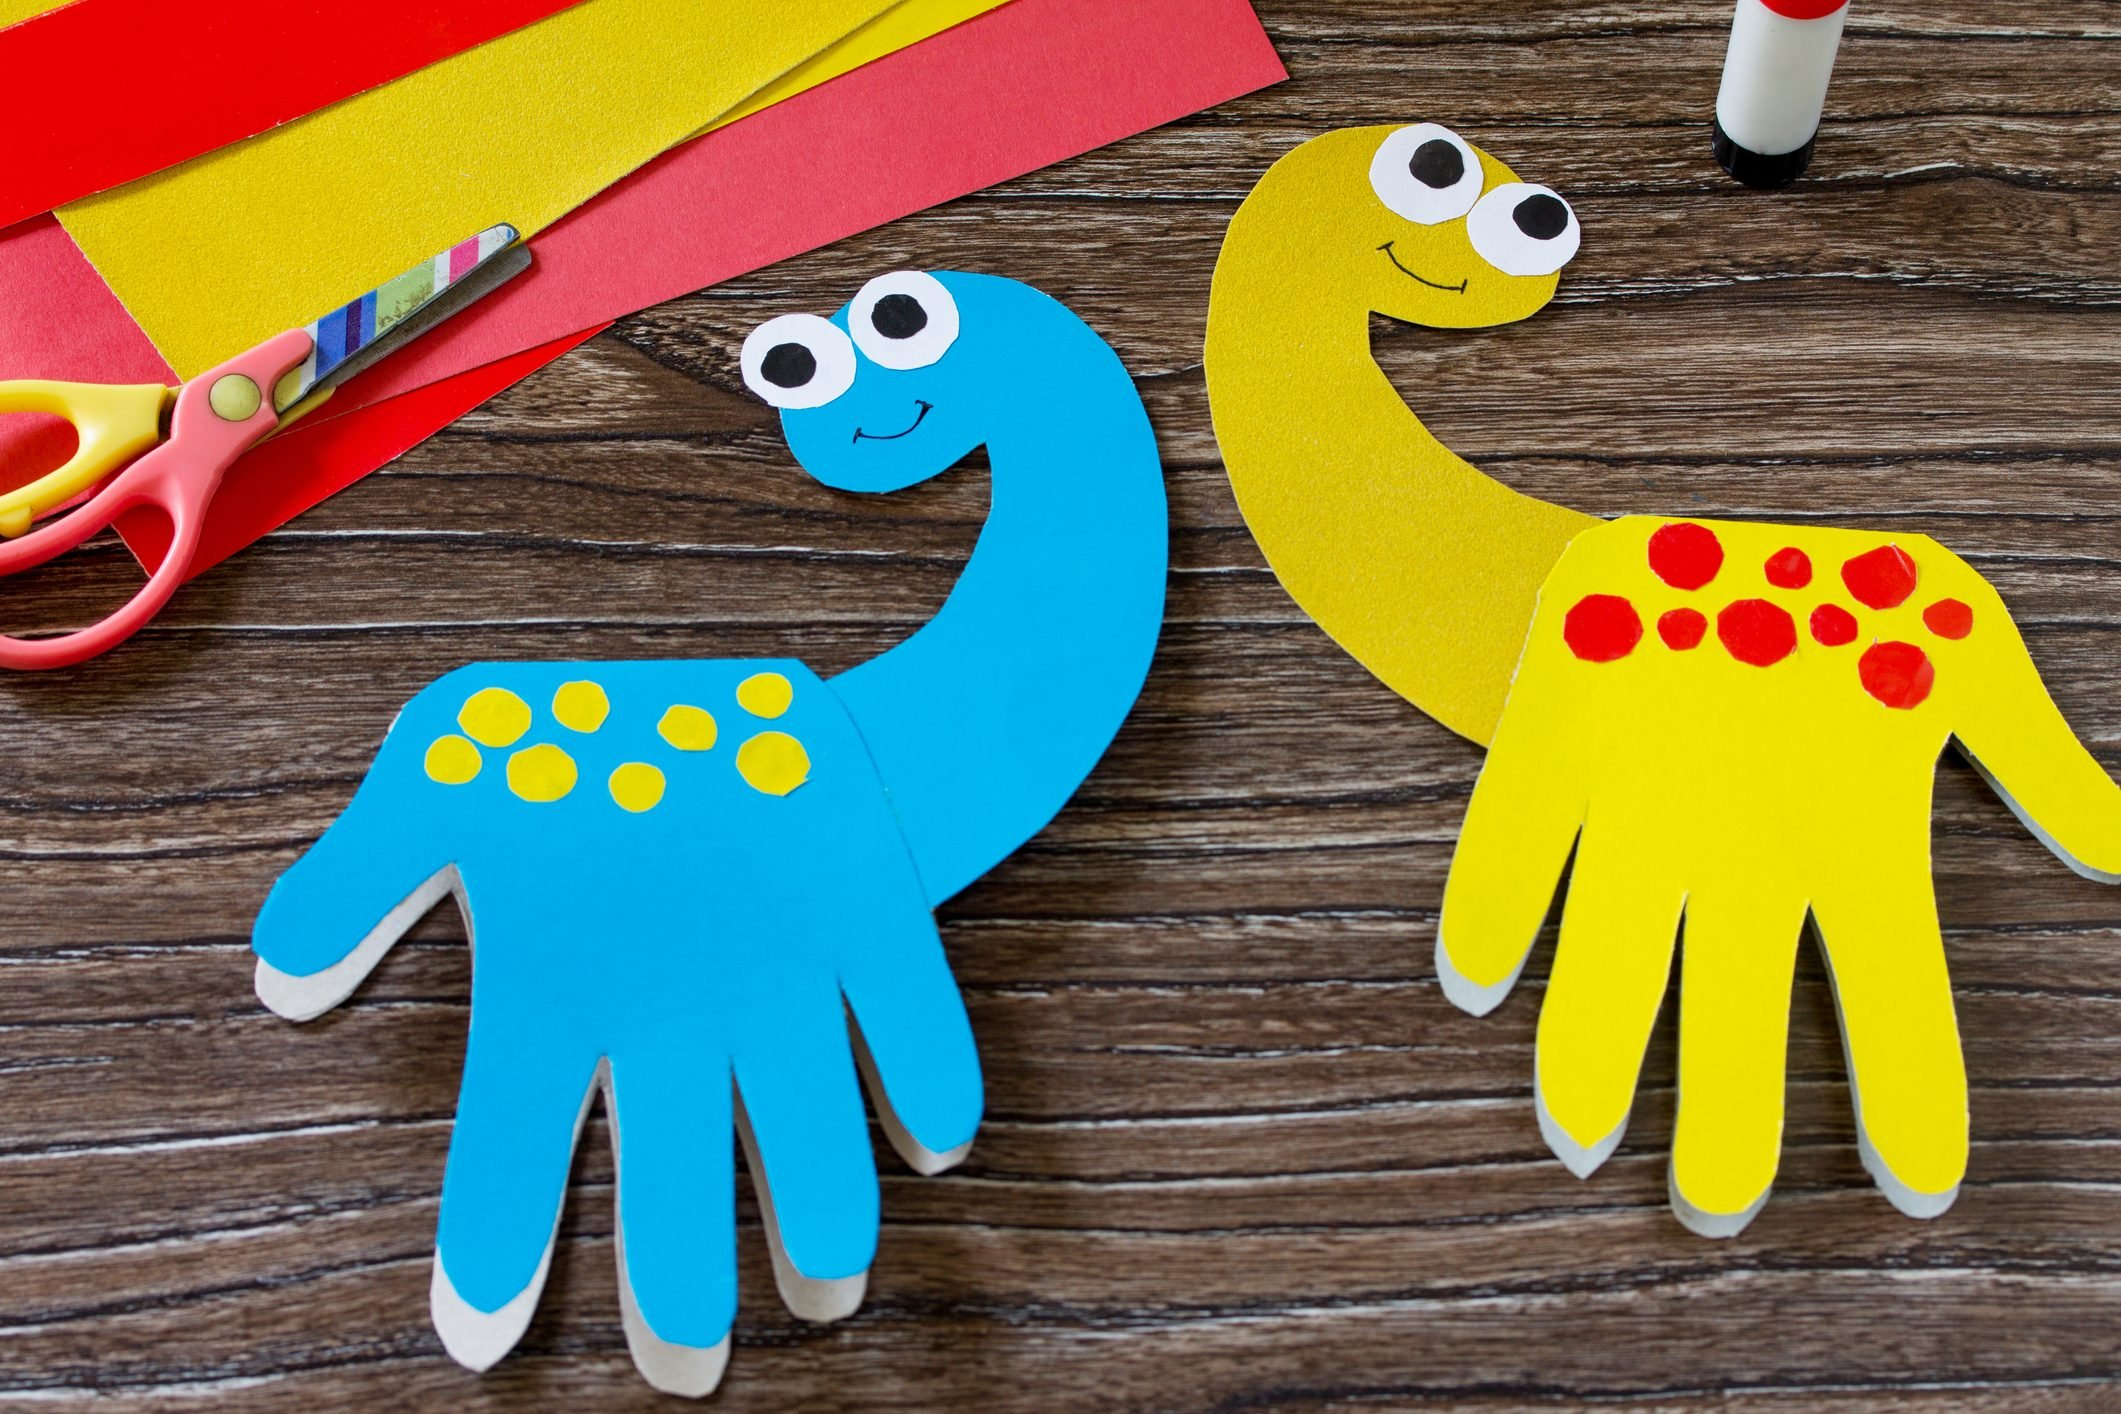 Father's day or birthday gift - card dinosaur. Handmade. Project of children's creativity, handicrafts, crafts for kids.